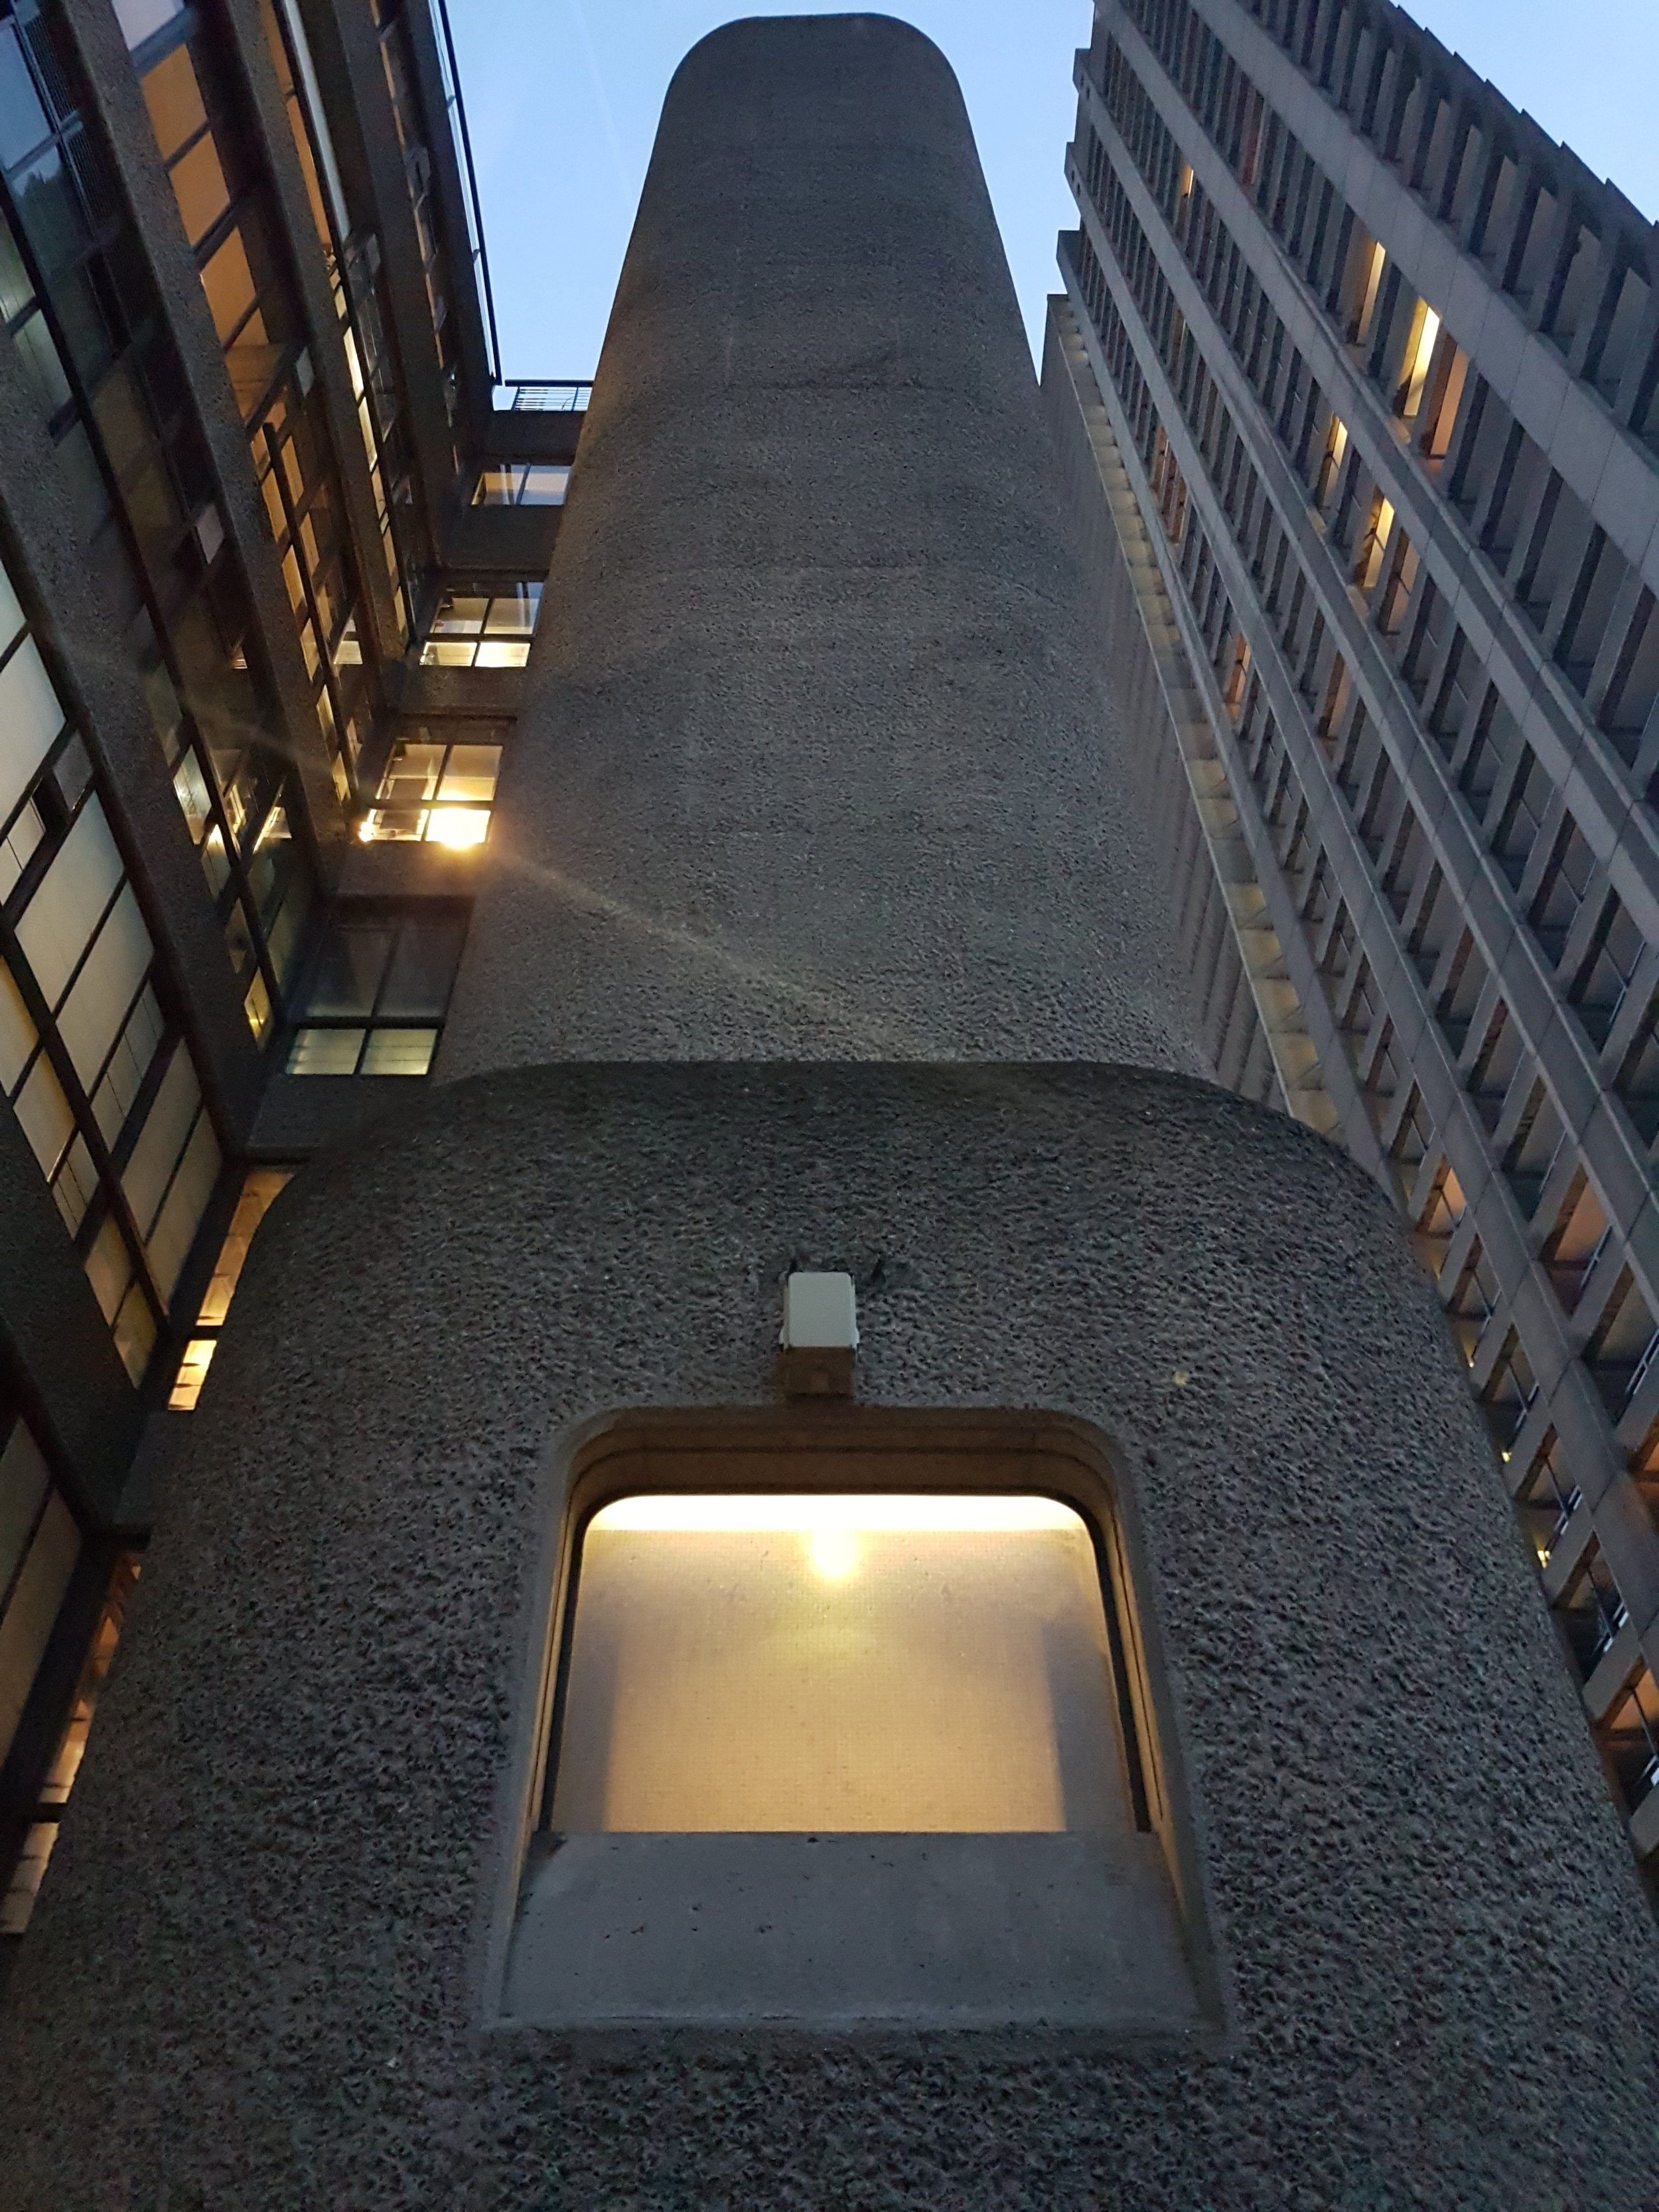 Details such as light fixtures and window frames were all custom designed for this project. The textured concrete walls were hand-drilled on the exterior and interior surfaces.